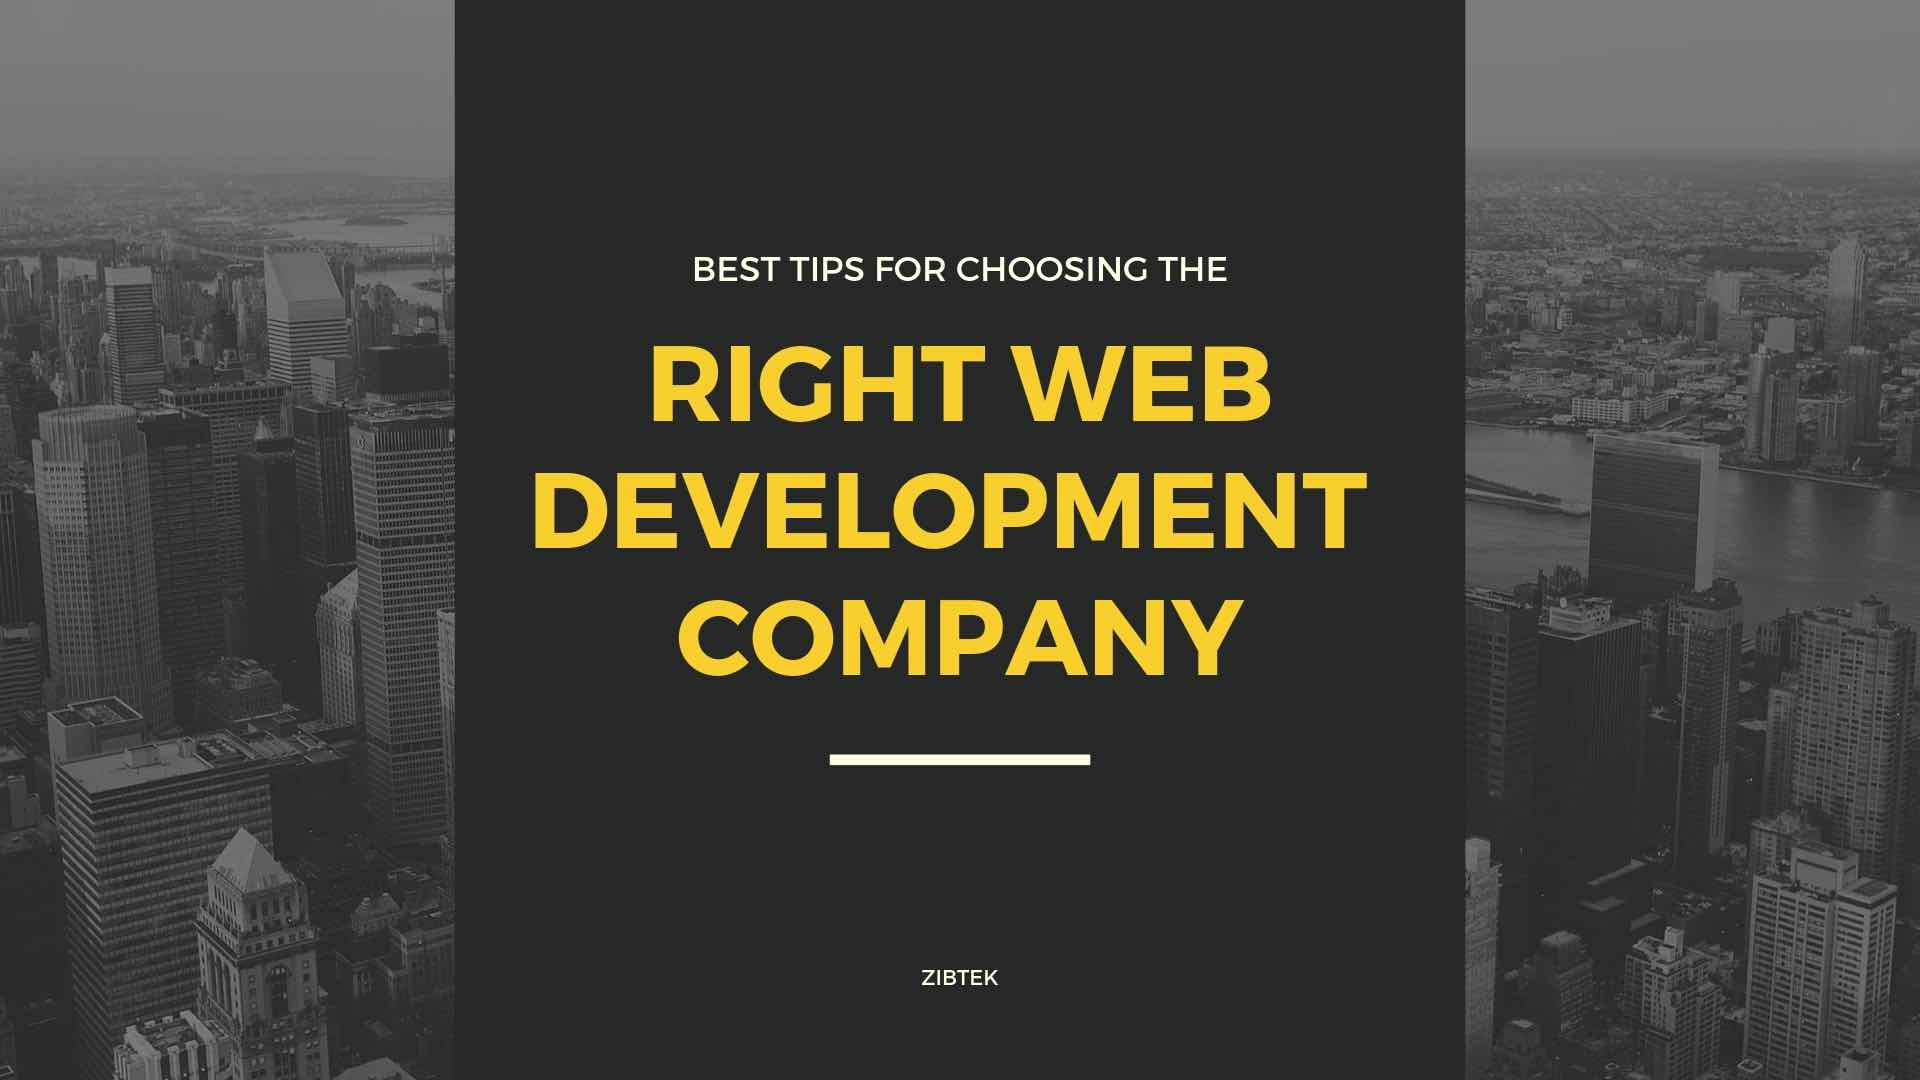 Best Tips For Choosing the Right Web Development Company